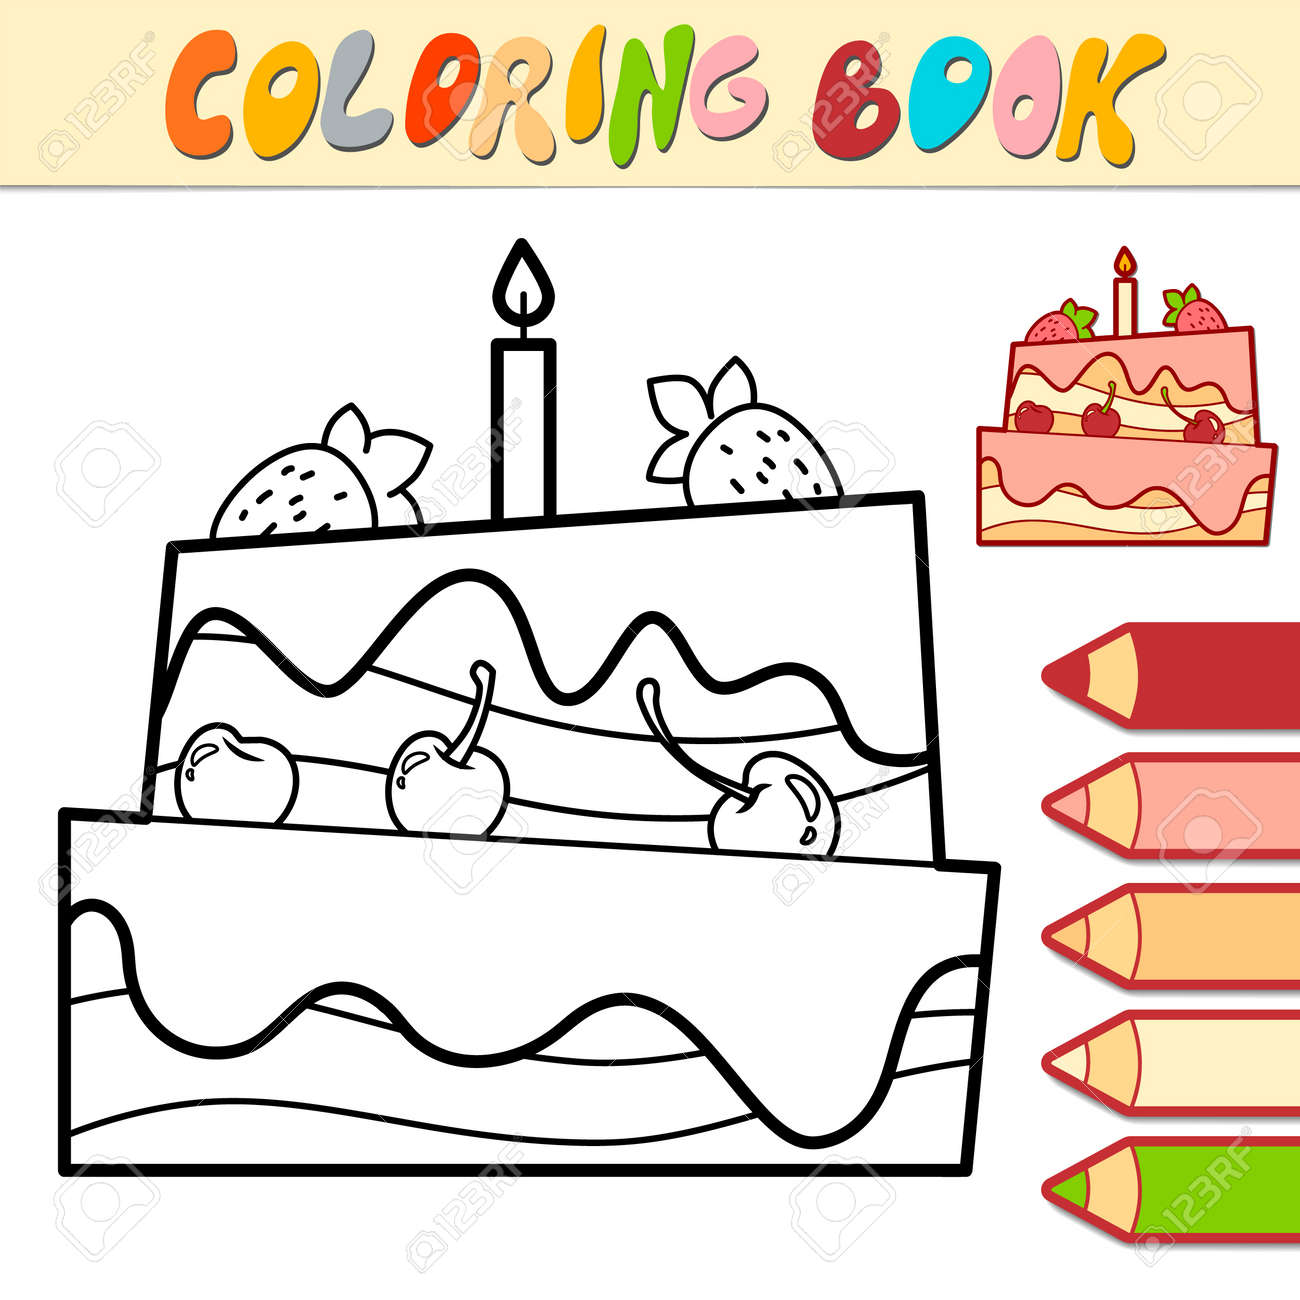 Coloring book or page for kids. cake black and white vector illustration - 168984986